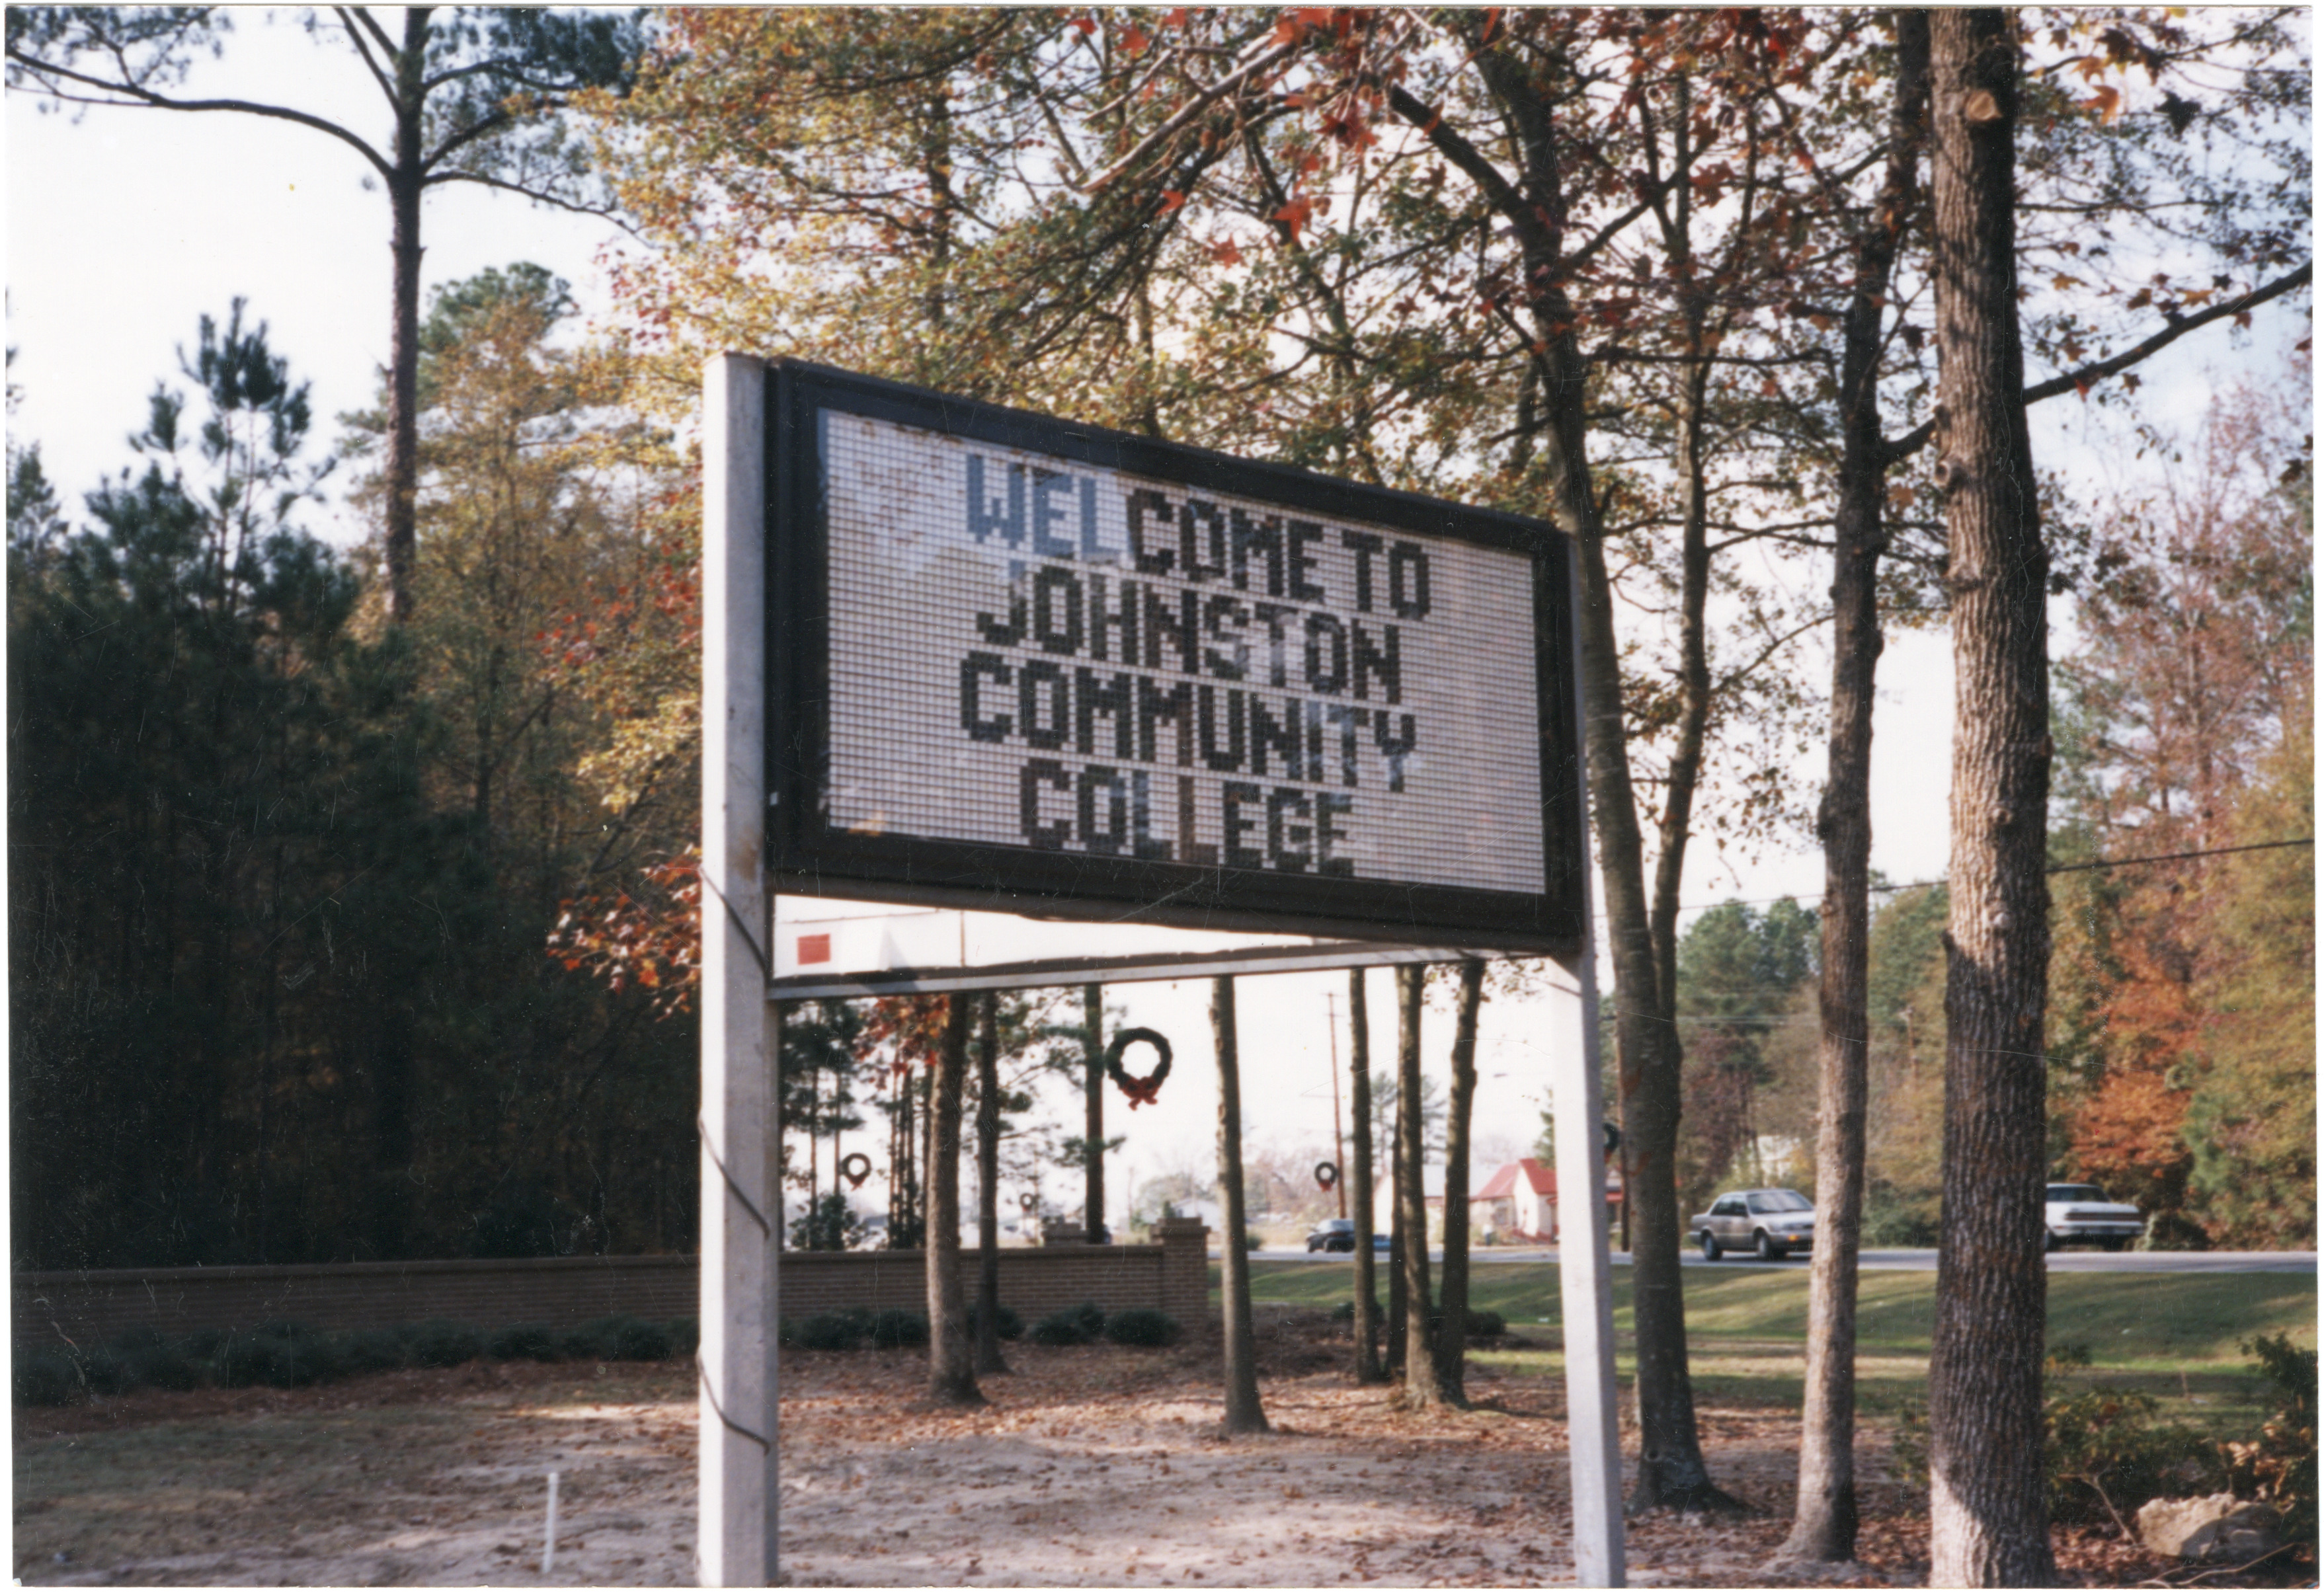 Electronic welcome sign, Johnston Community College, 1985